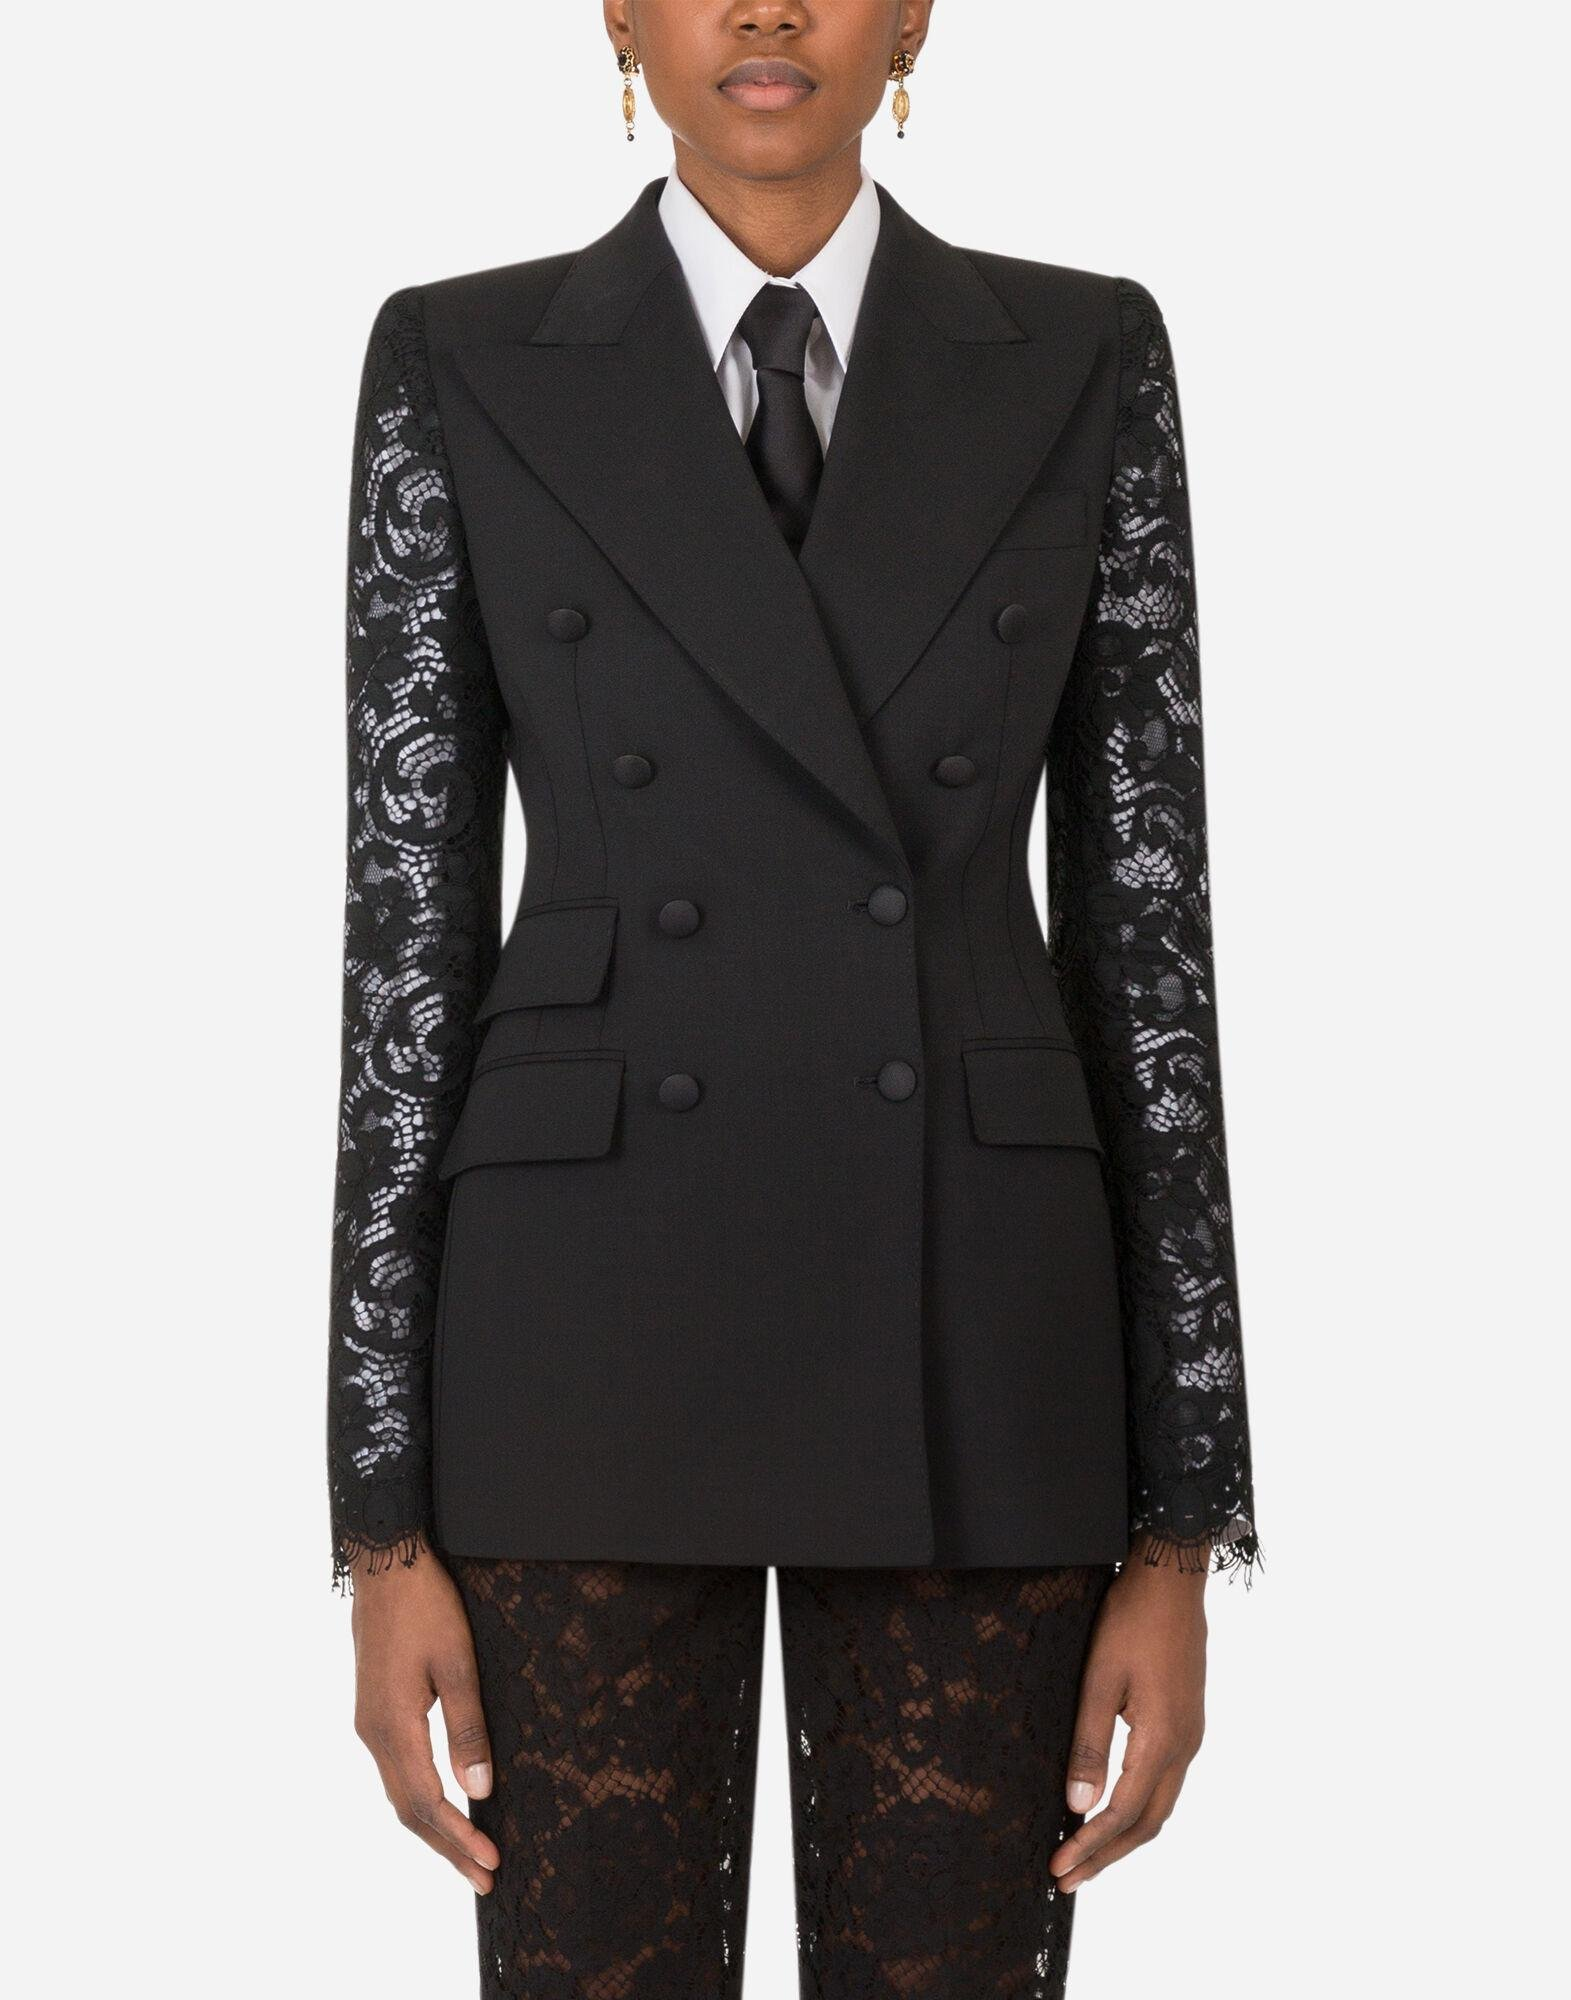 Double-breasted woolen blazer with lace sleeves